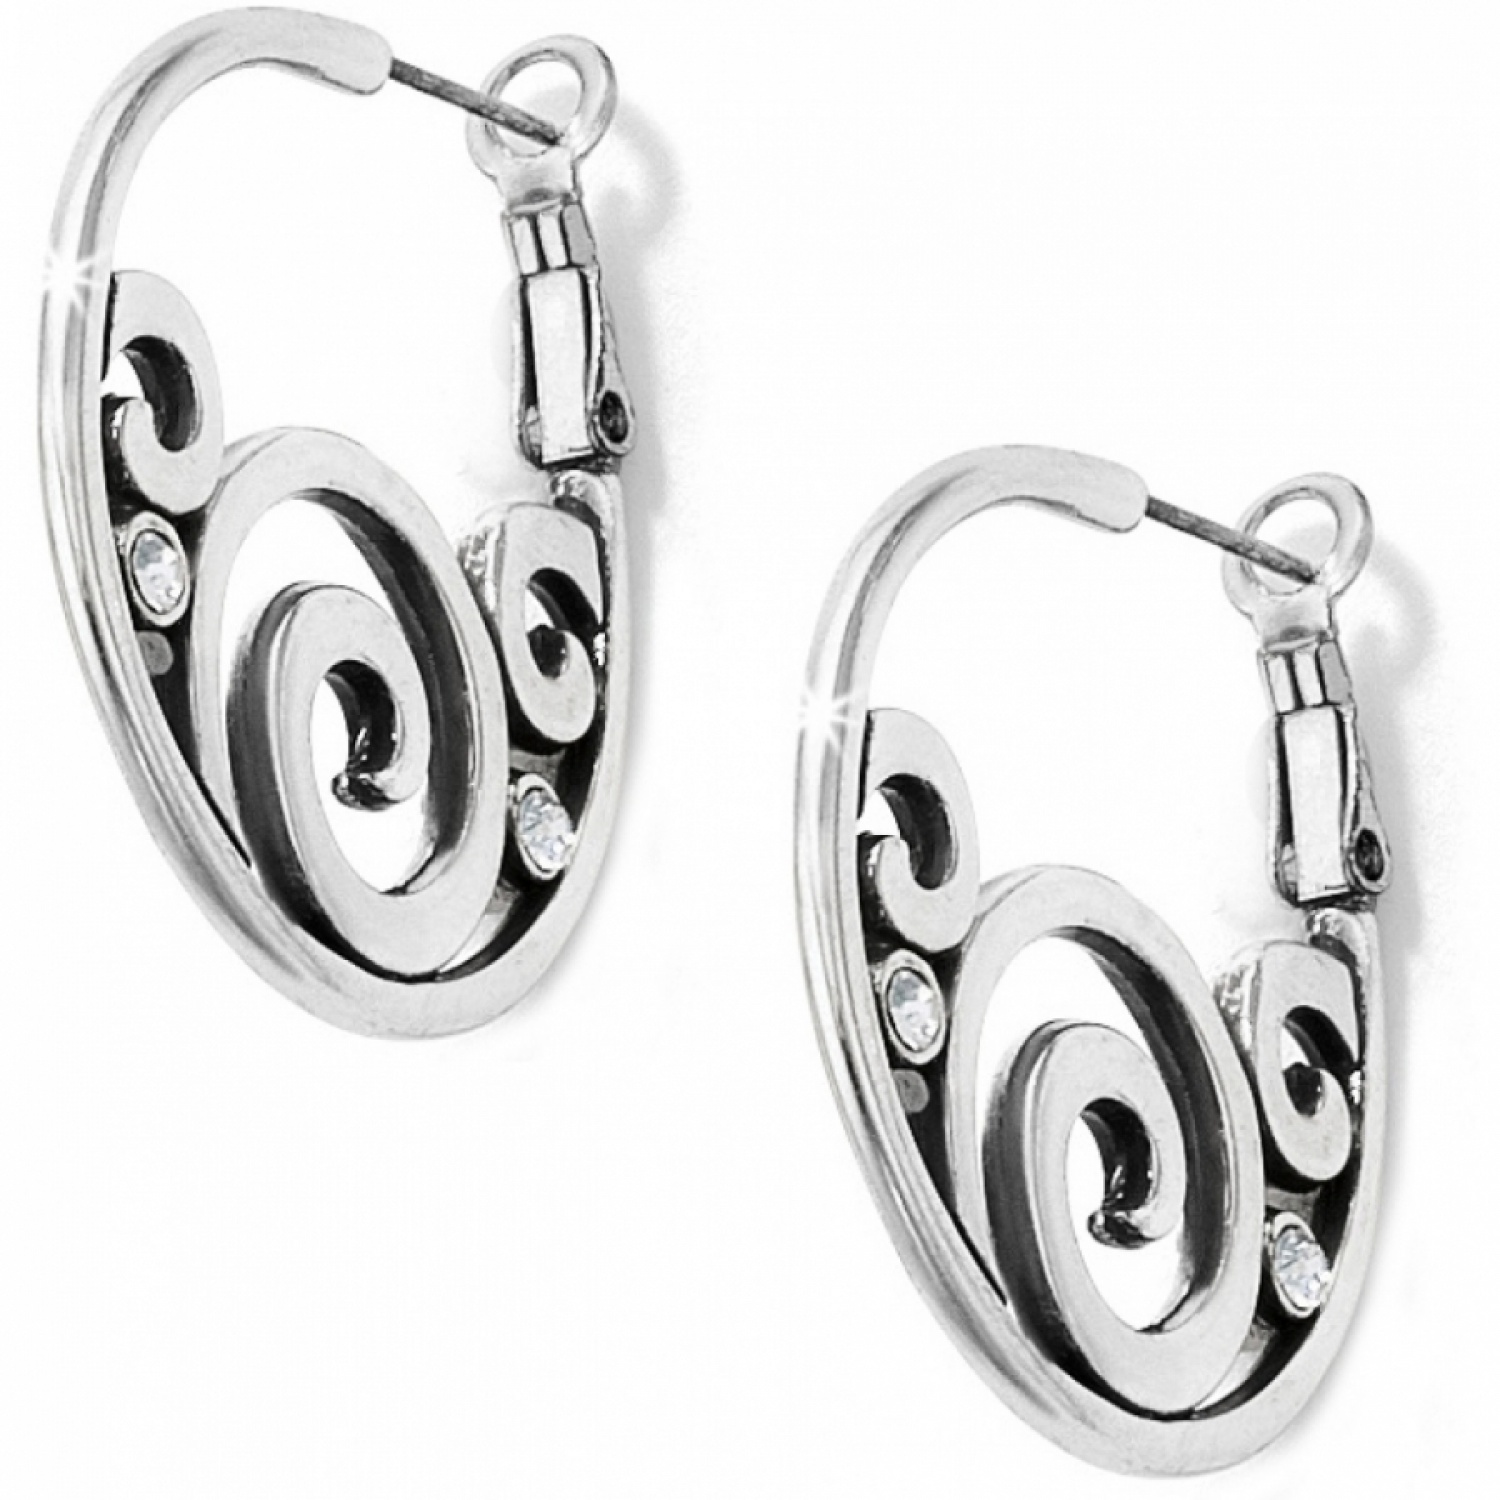 metals yellow pieces hoop kt you unique gold accurate precious as shopping jewelry are half clasp earrings